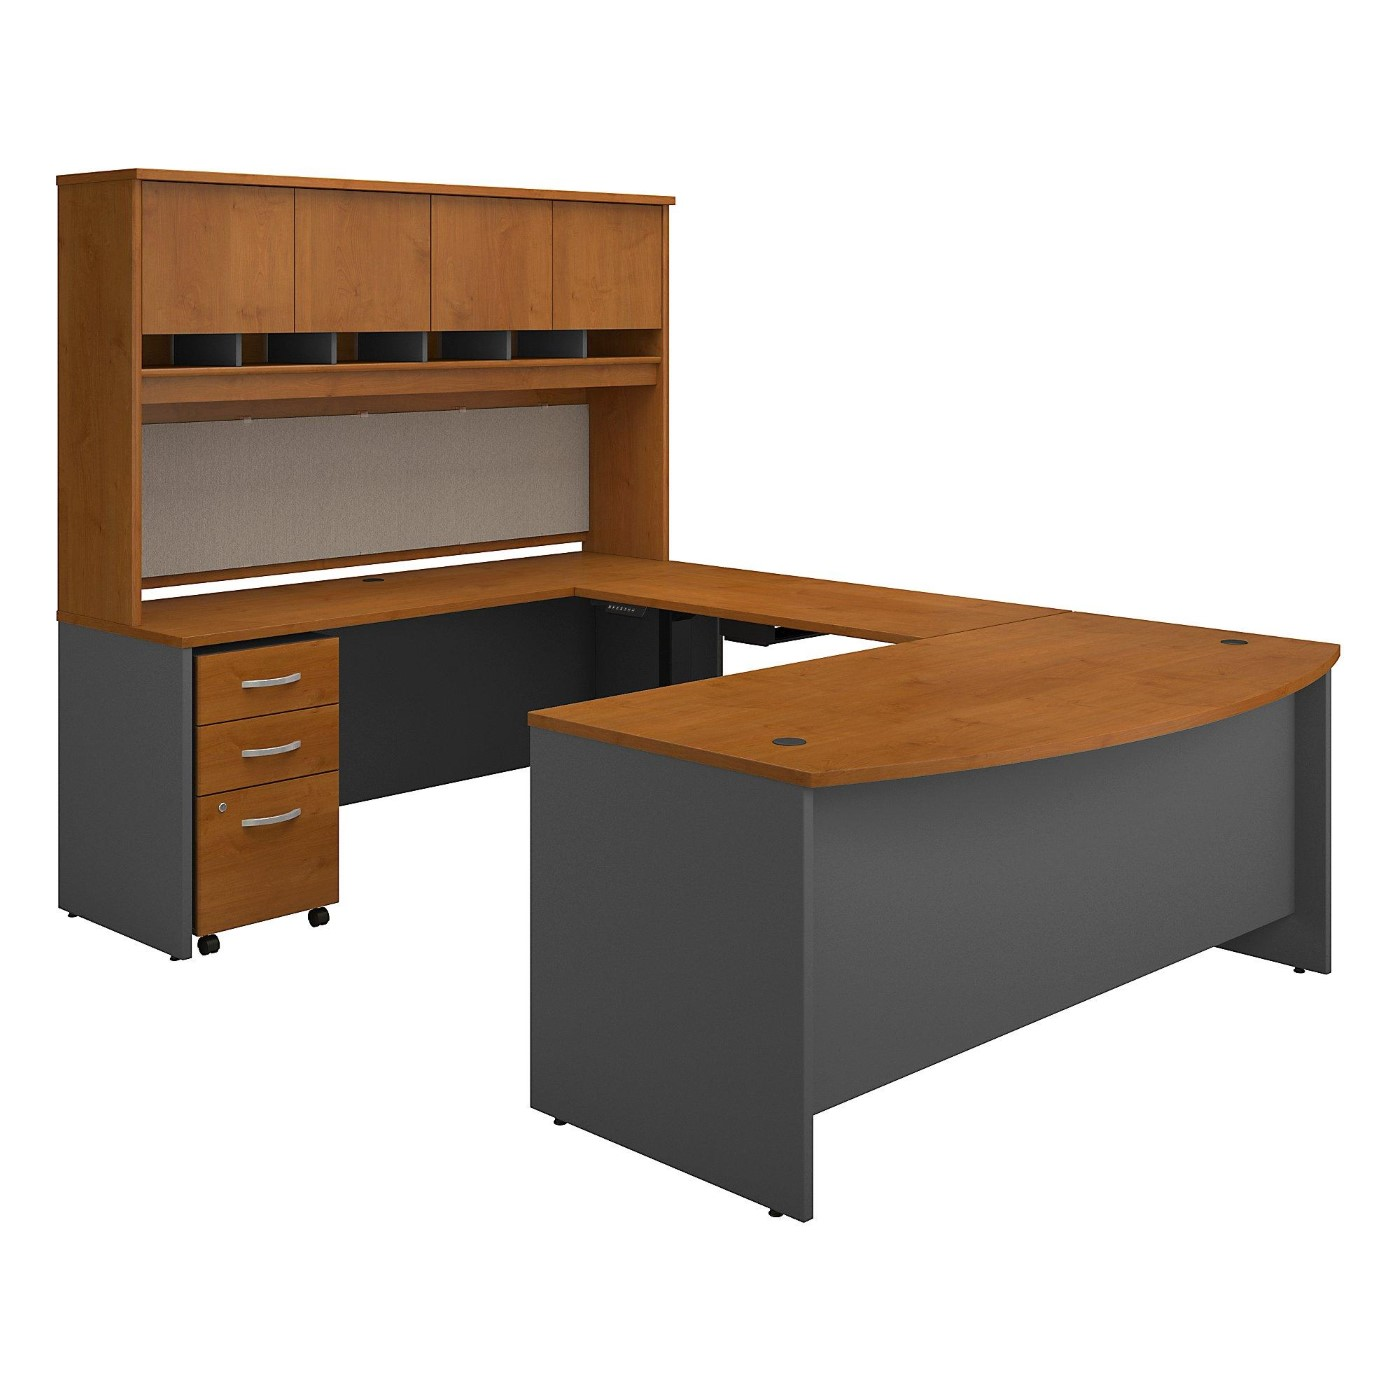 BUSH BUSINESS FURNITURE SERIES C 72W U SHAPED DESK WITH HEIGHT ADJUSTABLE BRIDGE, HUTCH AND STORAGE. FREE SHIPPING</font></b></font>&#x1F384<font color=red><b>ERGONOMICHOME HOLIDAY SALE - ENDS DEC. 17, 2019</b></font>&#x1F384